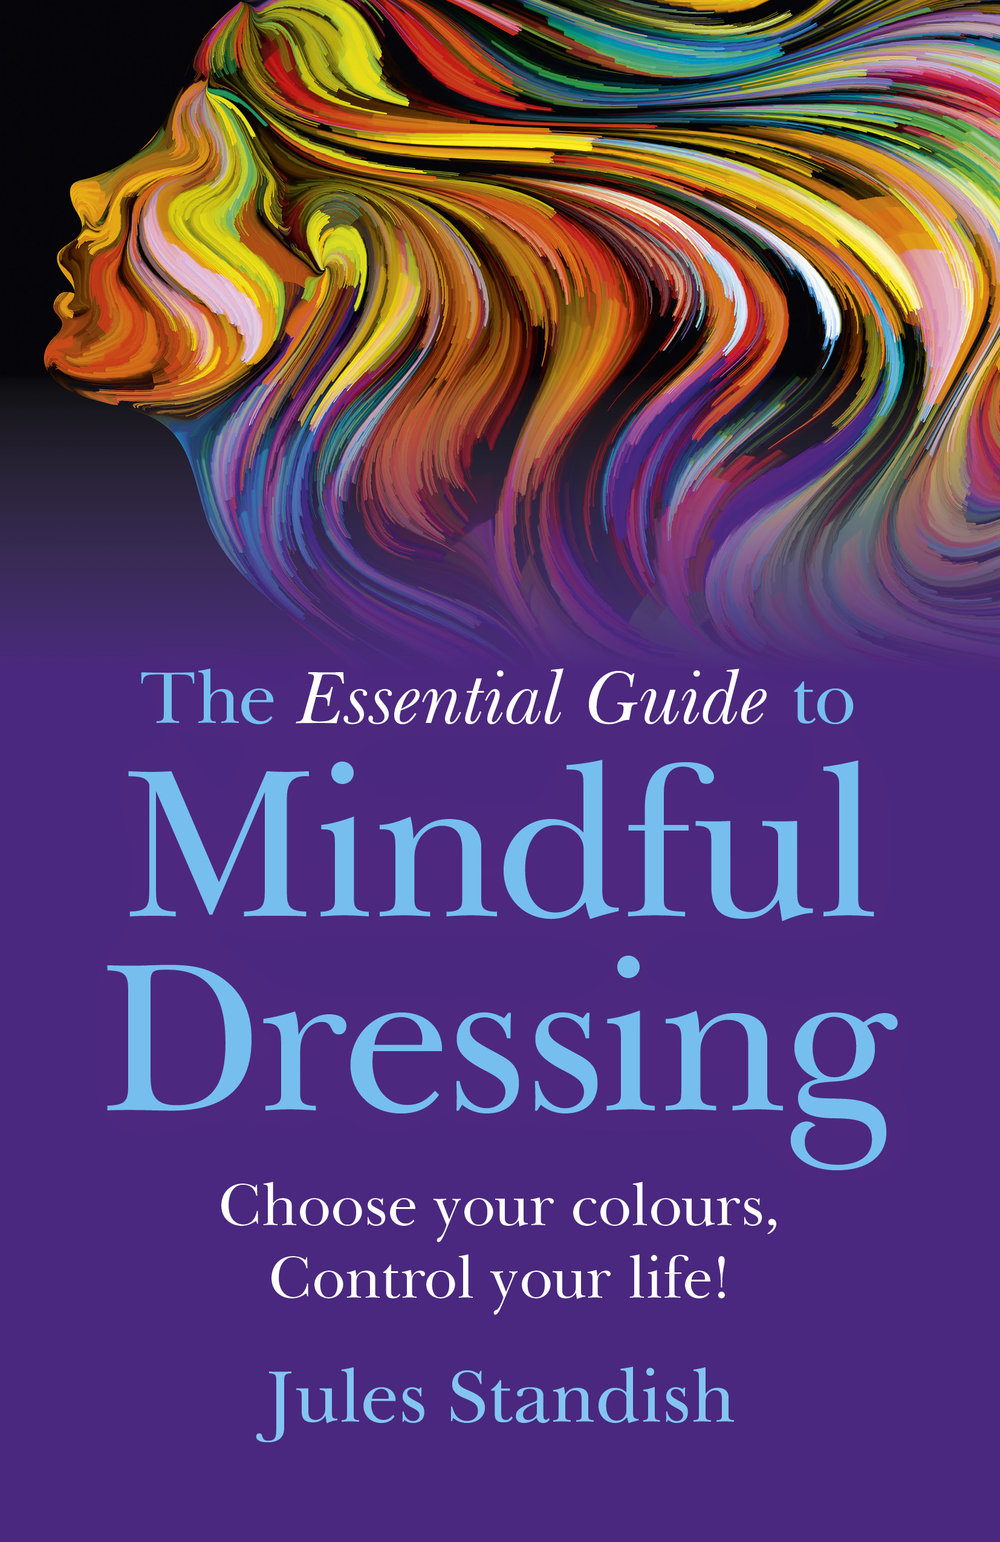 Essential_guide_to_mindful_dressing_jacket.jpg